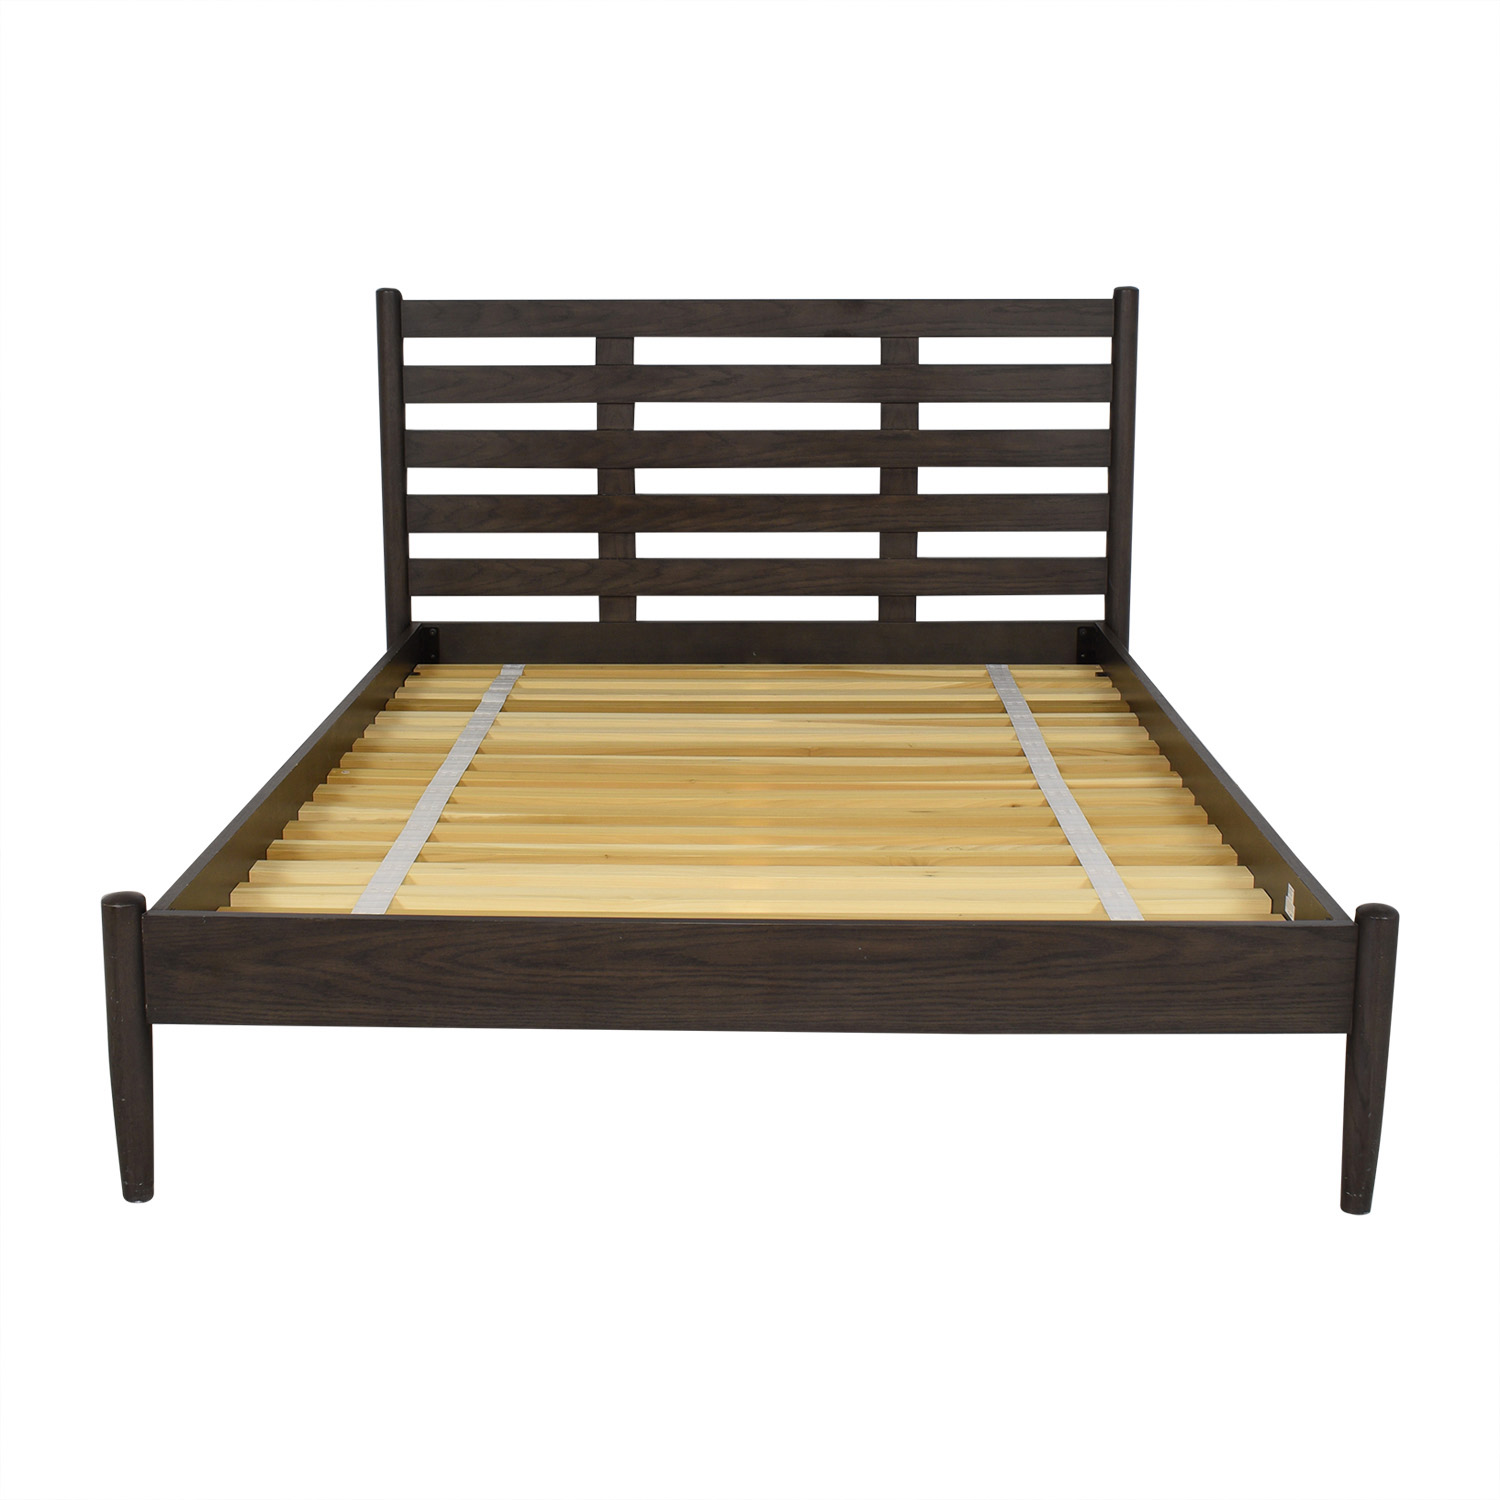 Crate & Barrel Crate & Barrel Barnes Queen Bed dark brown